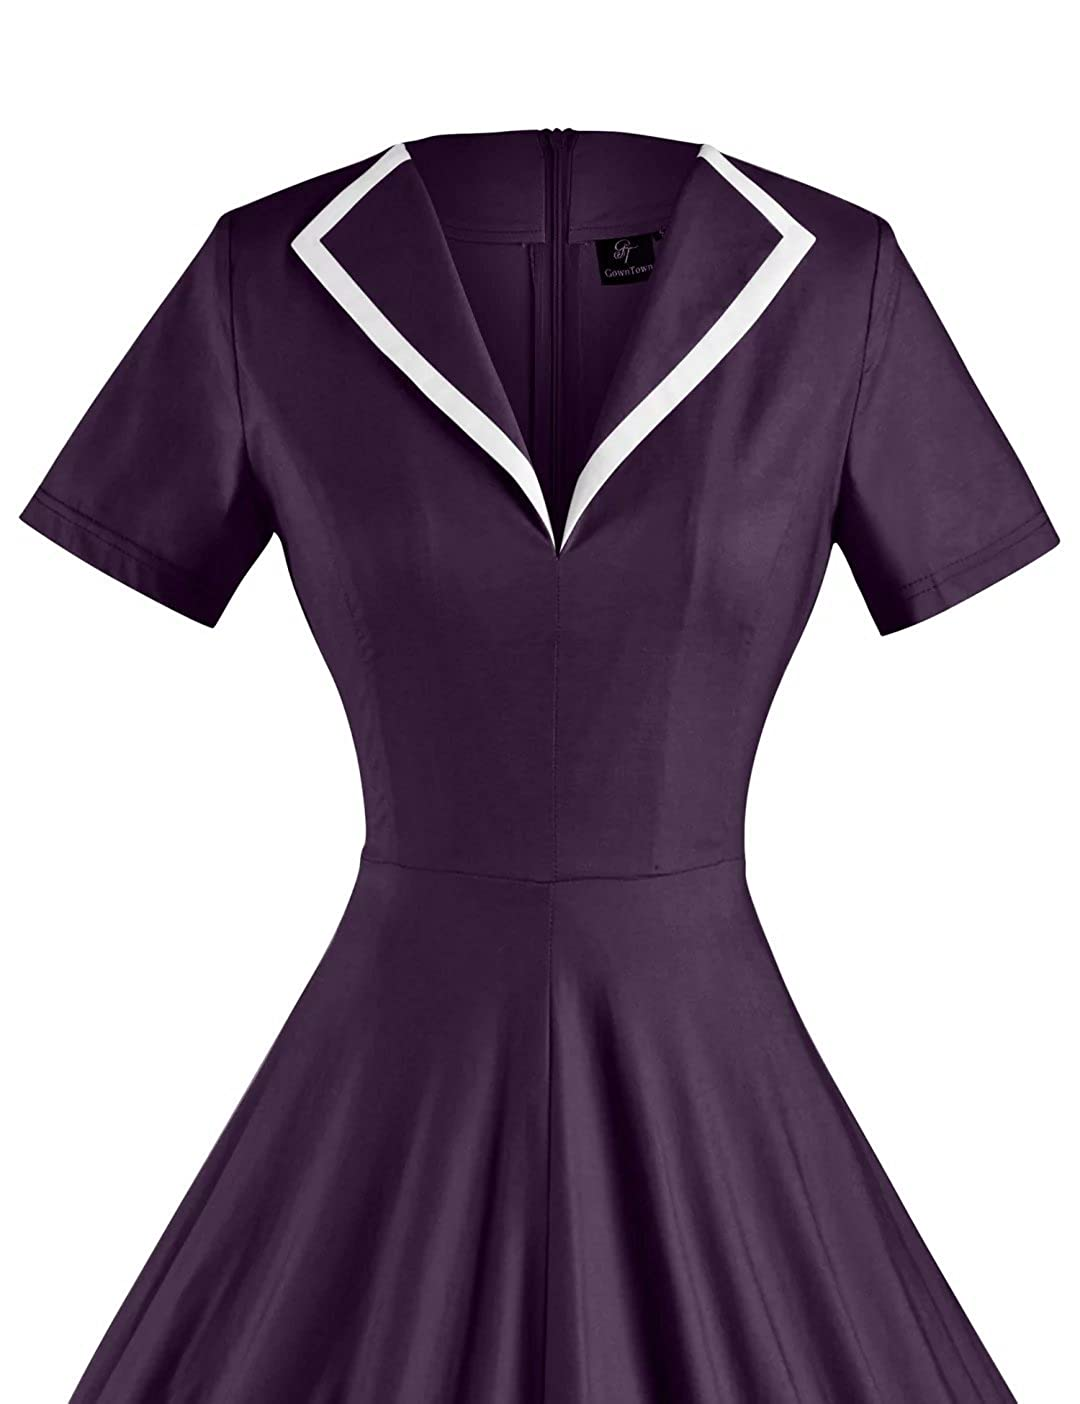 5ab555826f0b GownTown Women's 1950s Retro Vintage V-Neck Party Swing Dress at Amazon  Women's Clothing store: